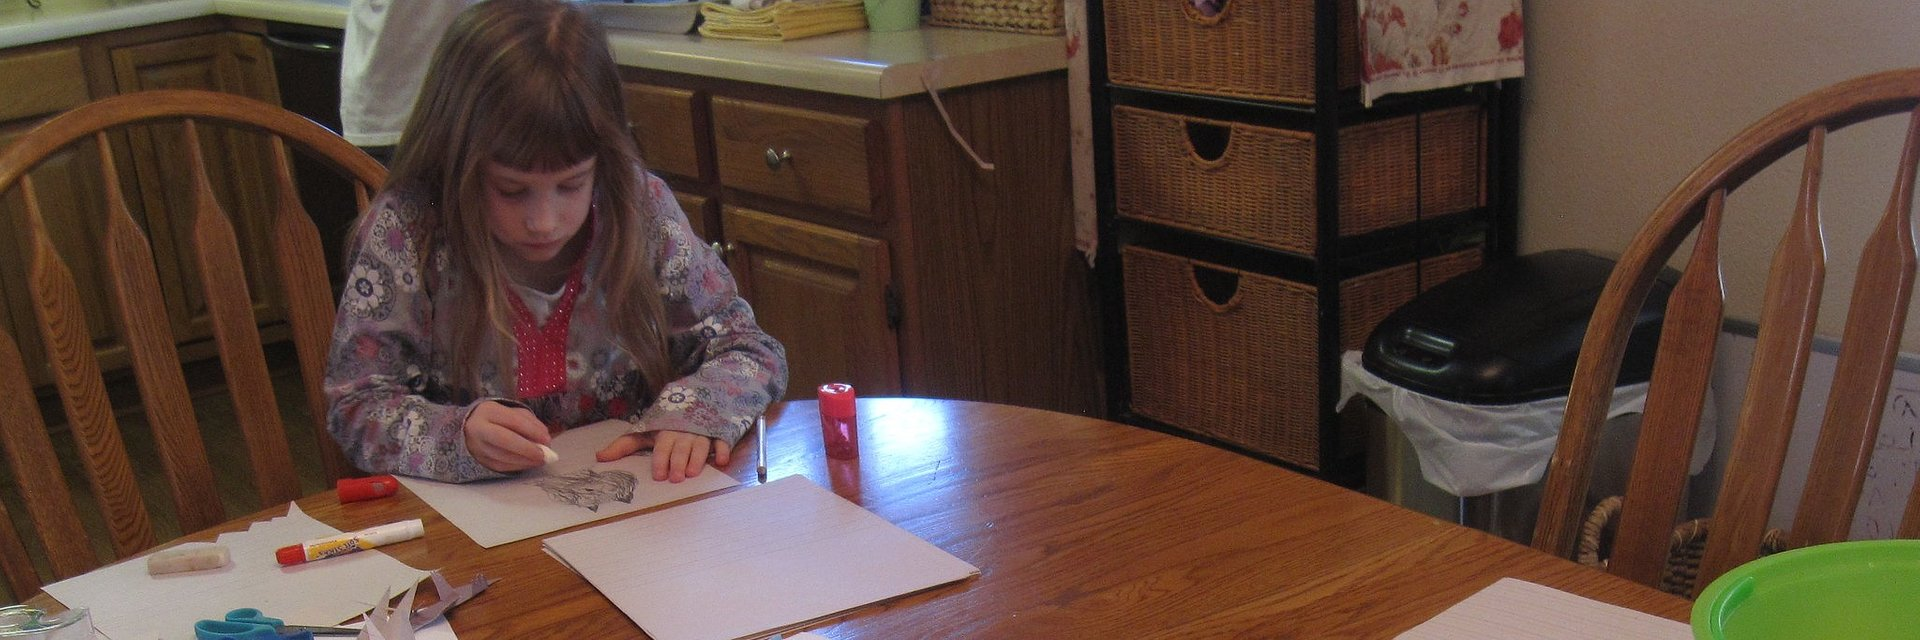 Back to School Survey Shows 47% of Parents Considering Dropping School, Going to Homeschooling